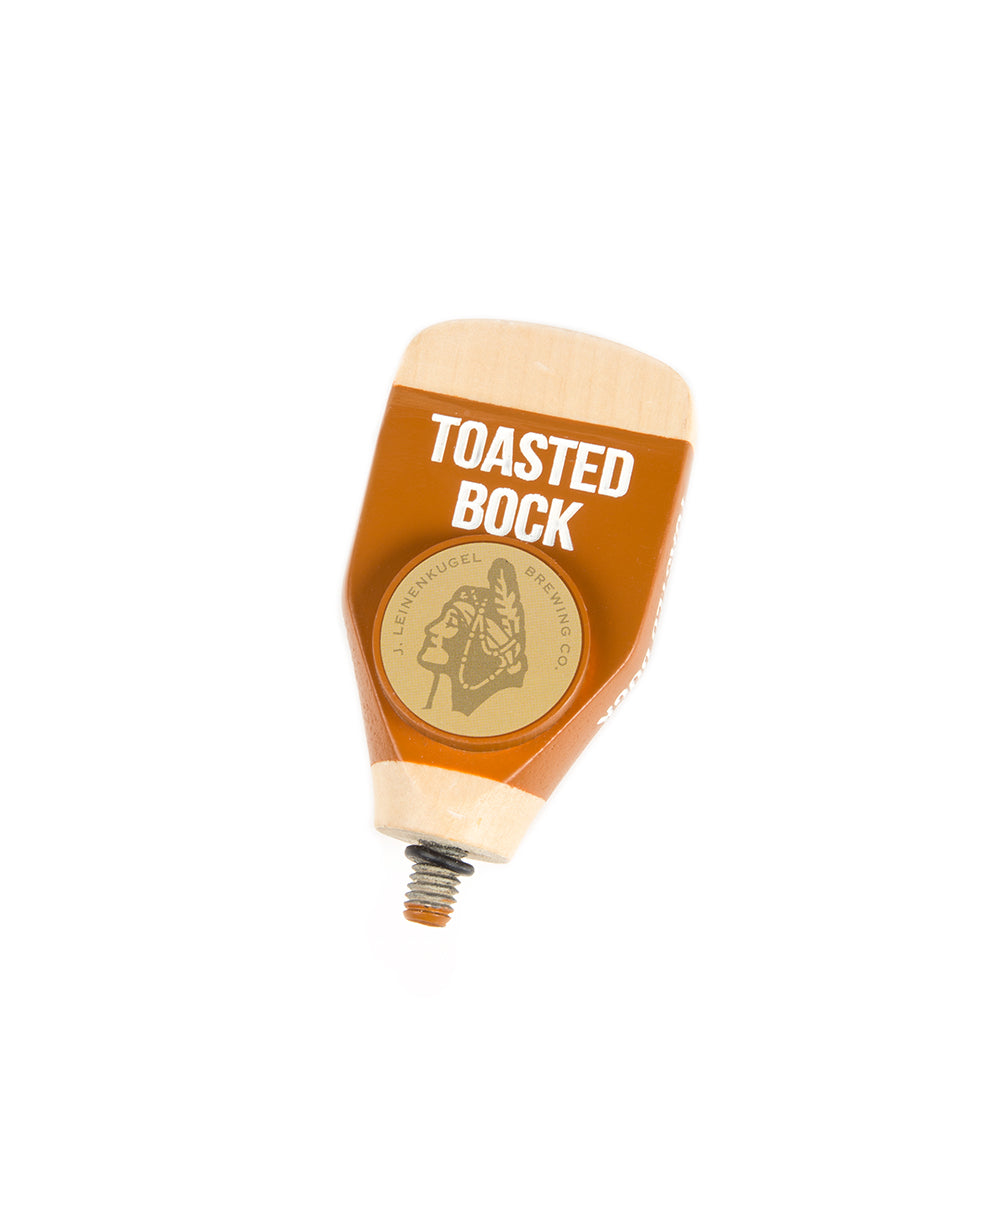 TOASTED BOCK TAP TOP